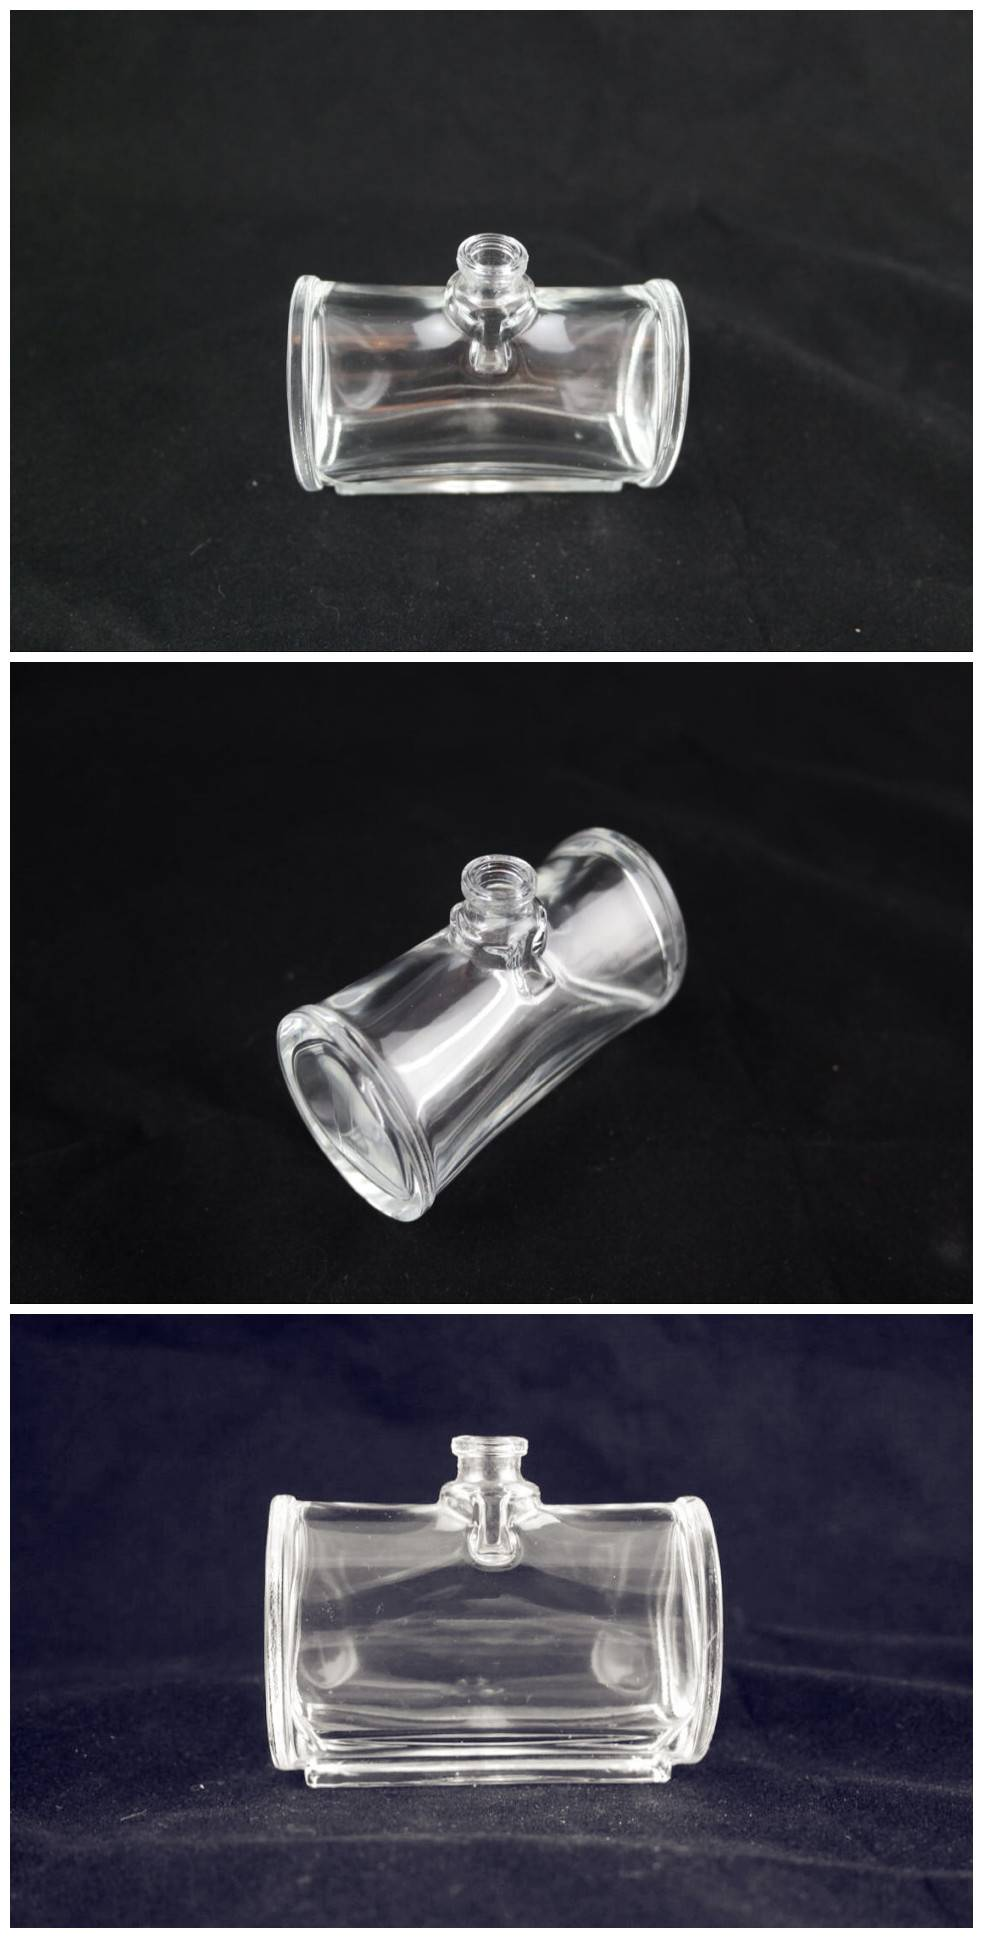 Crystal glass perfume bottle, various colors and designs are available